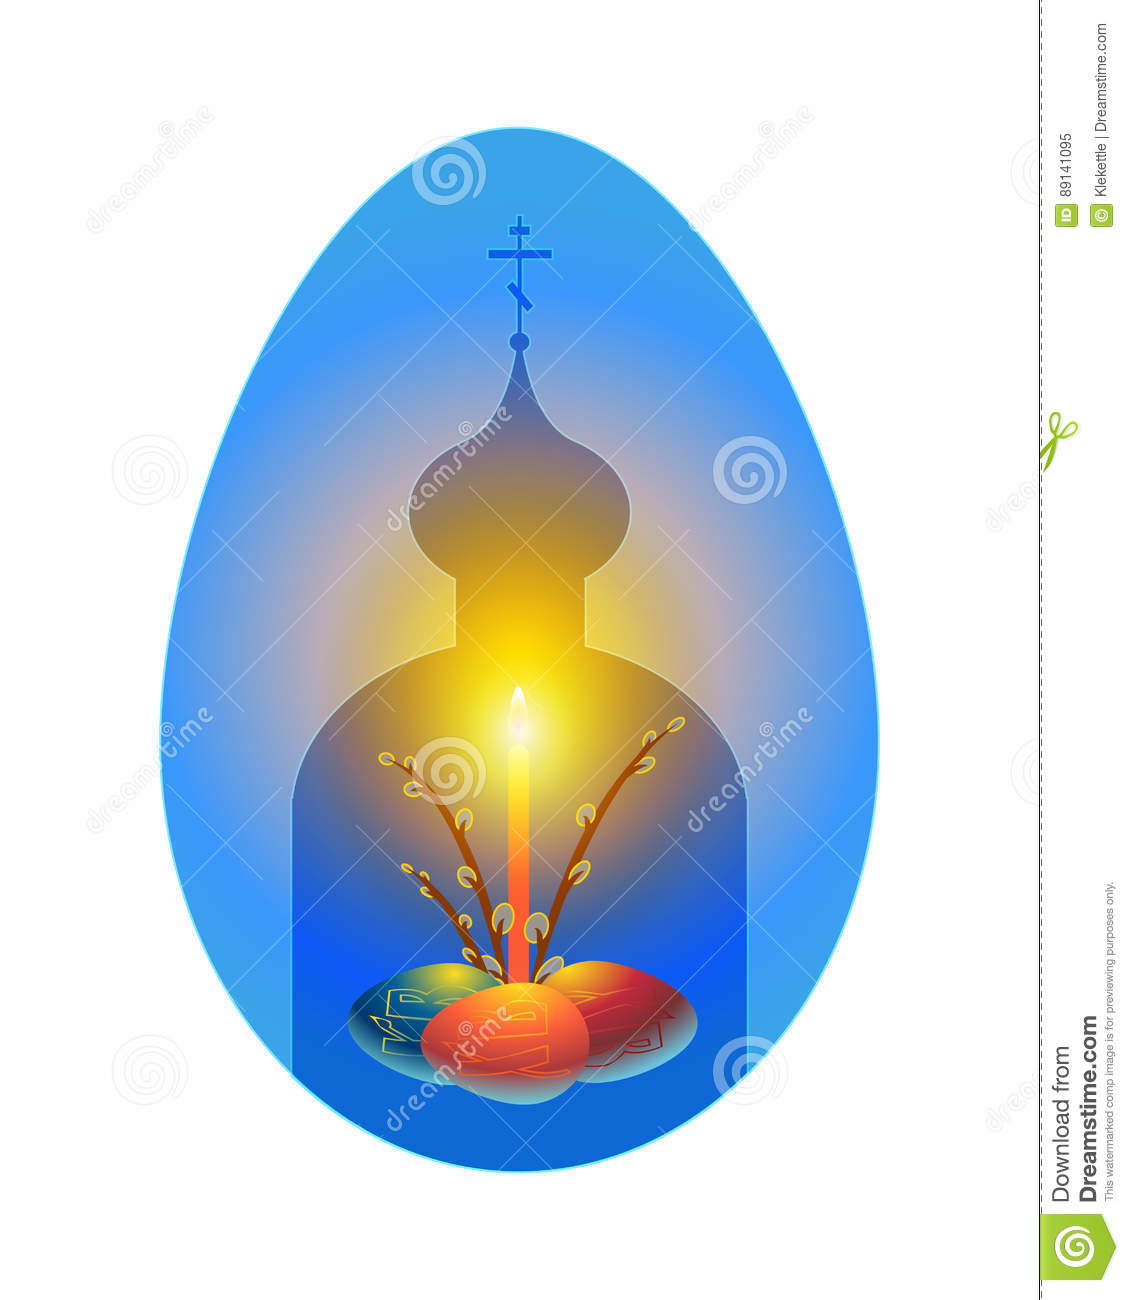 Orthodox easter greeting card in shape of egg stock vector orthodox easter greeting card in shape of egg m4hsunfo